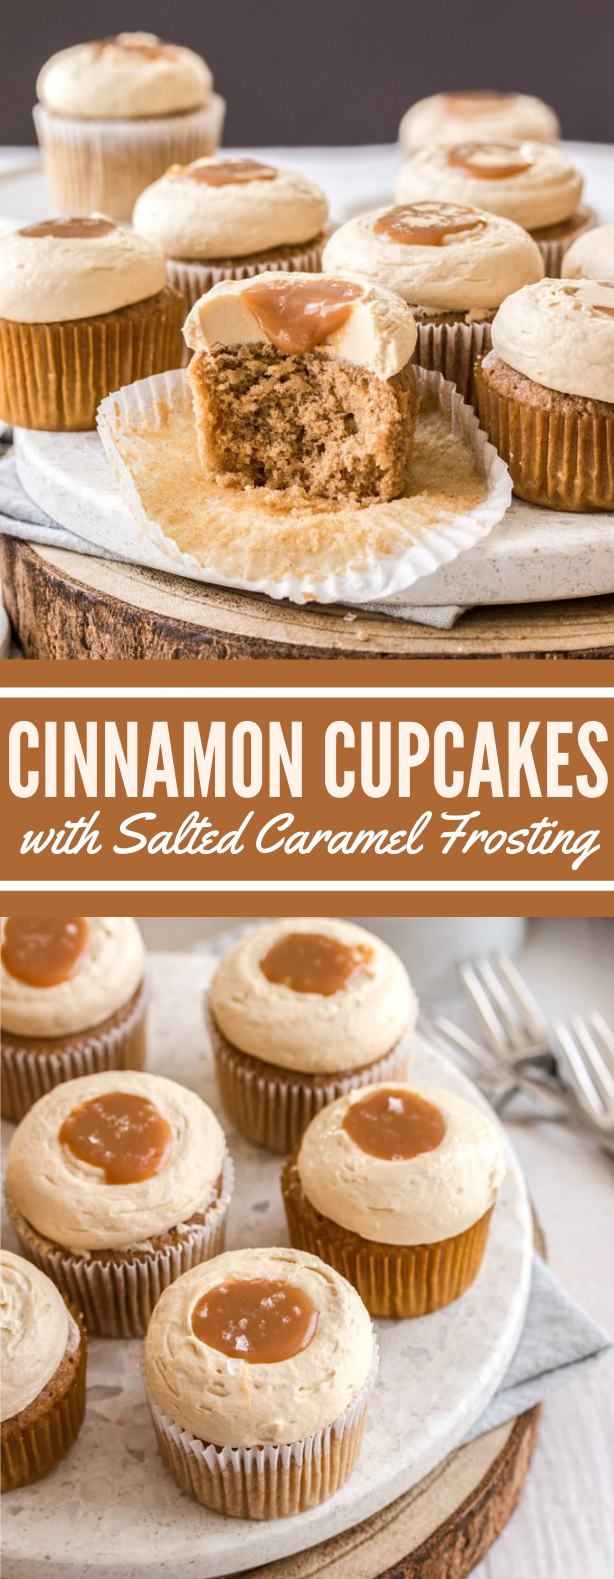 CINNAMON CUPCAKES WITH SALTED CARAMEL FROSTING #desserts #sweets #cake #frosting #cupcake